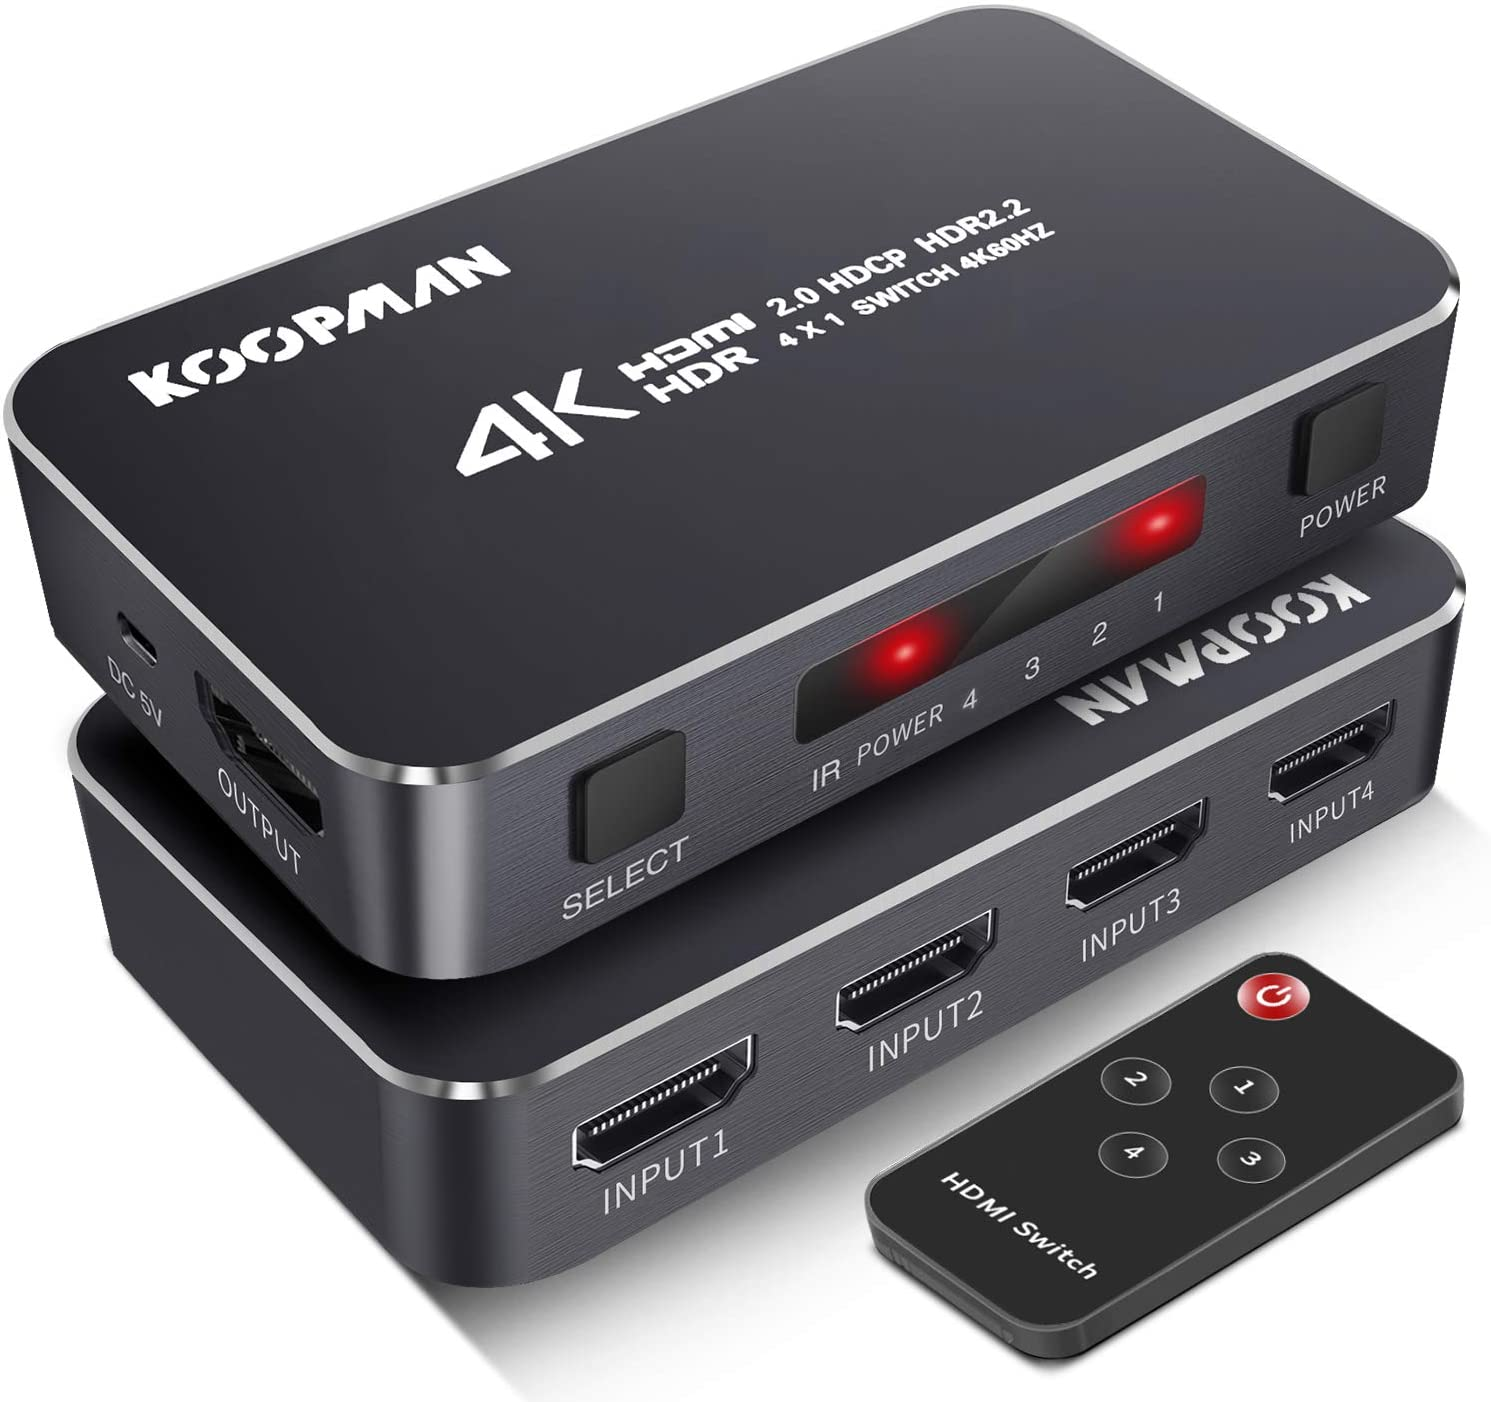 Koopman HDMI Switch 4 Port 4K